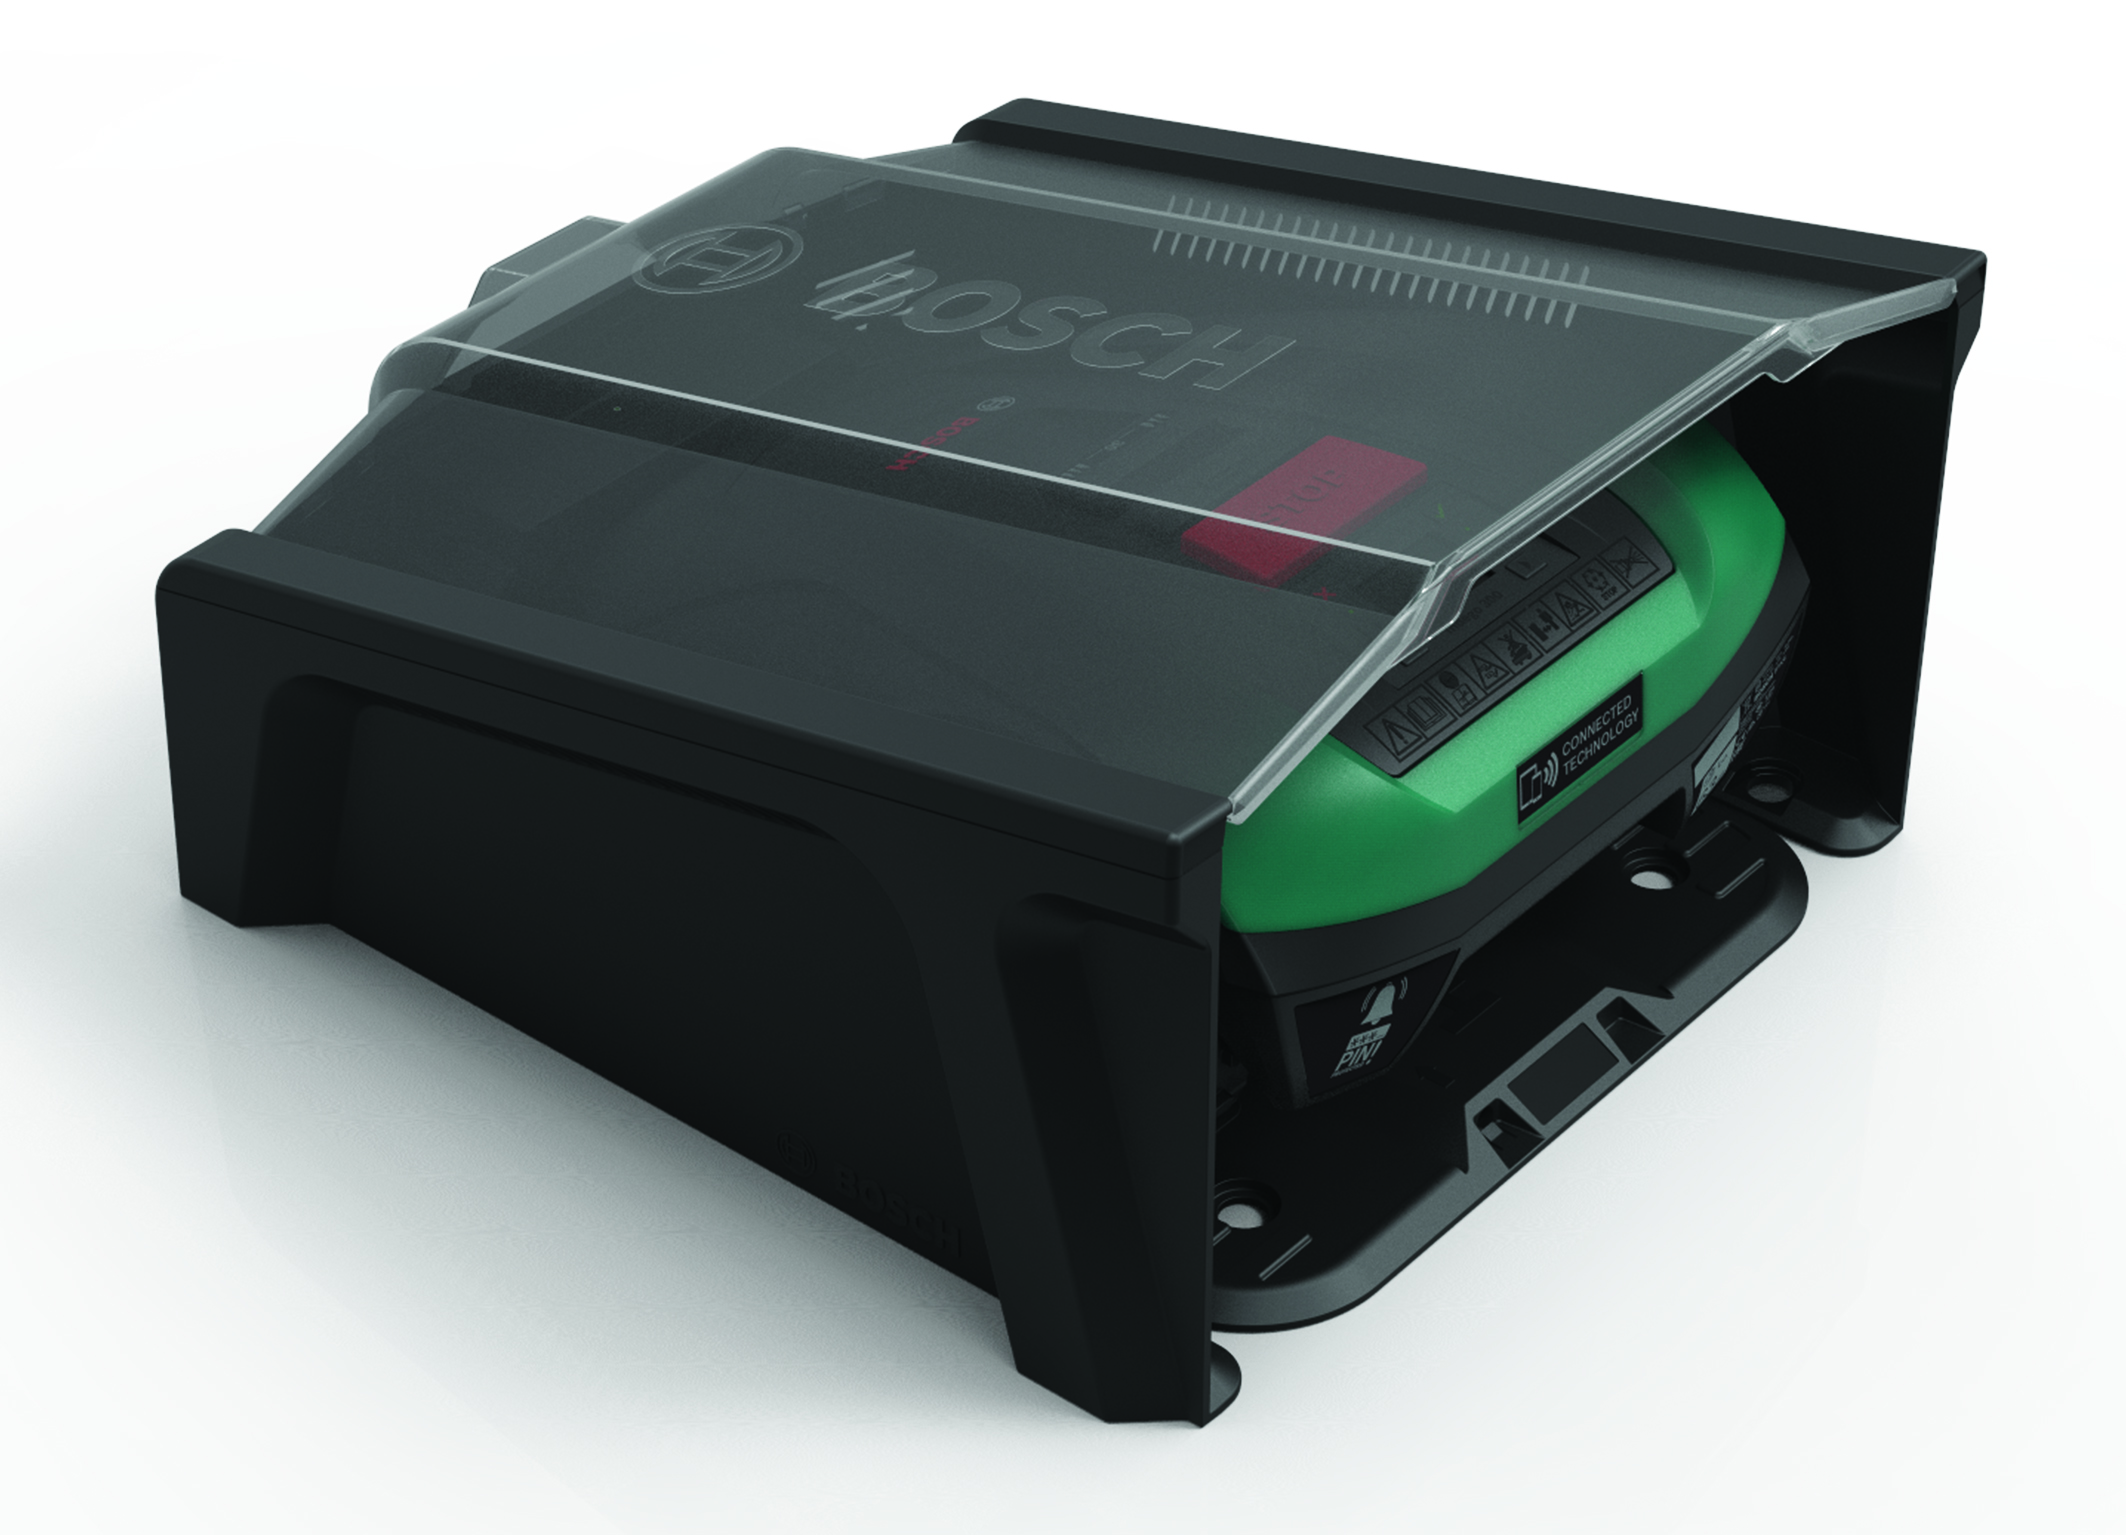 Additional protection for the new Indego: The Indego Garage for robotic lawnmowers from Bosch